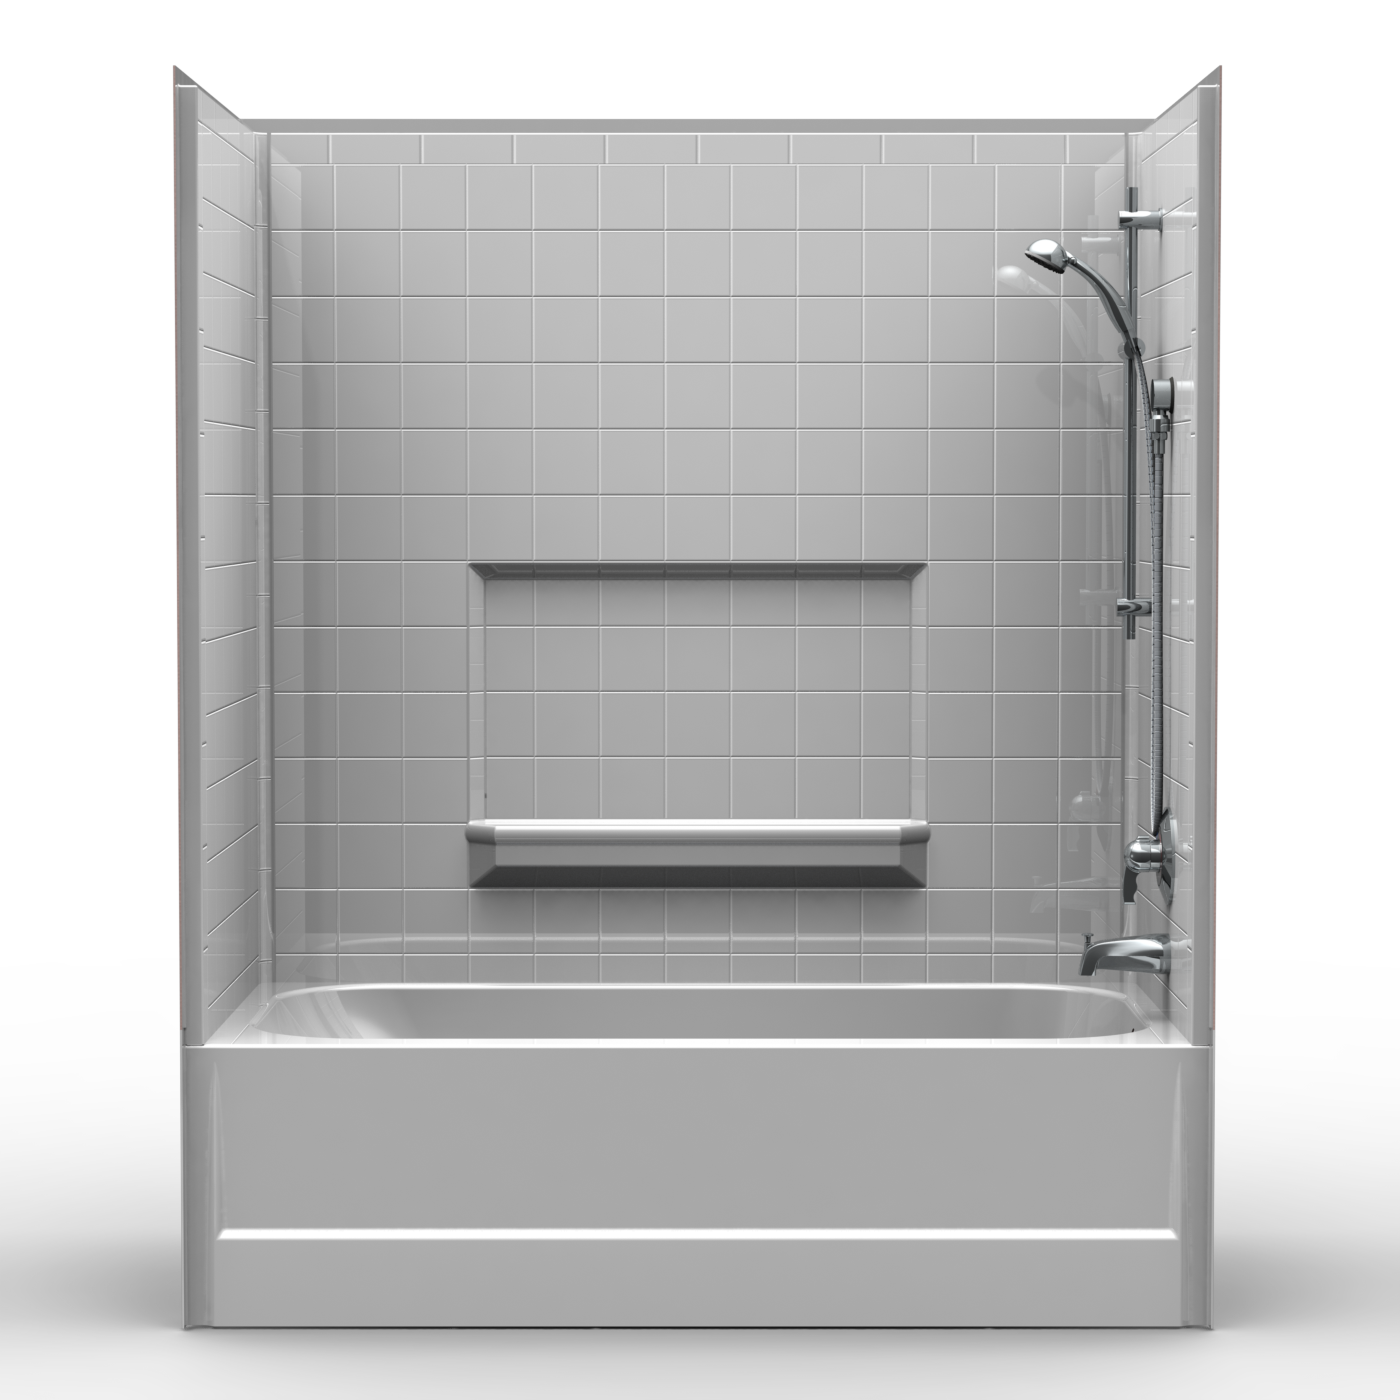 Multi piece tub shower 60 x 30 x 72 shower tub combo for Garden bathtub shower combo